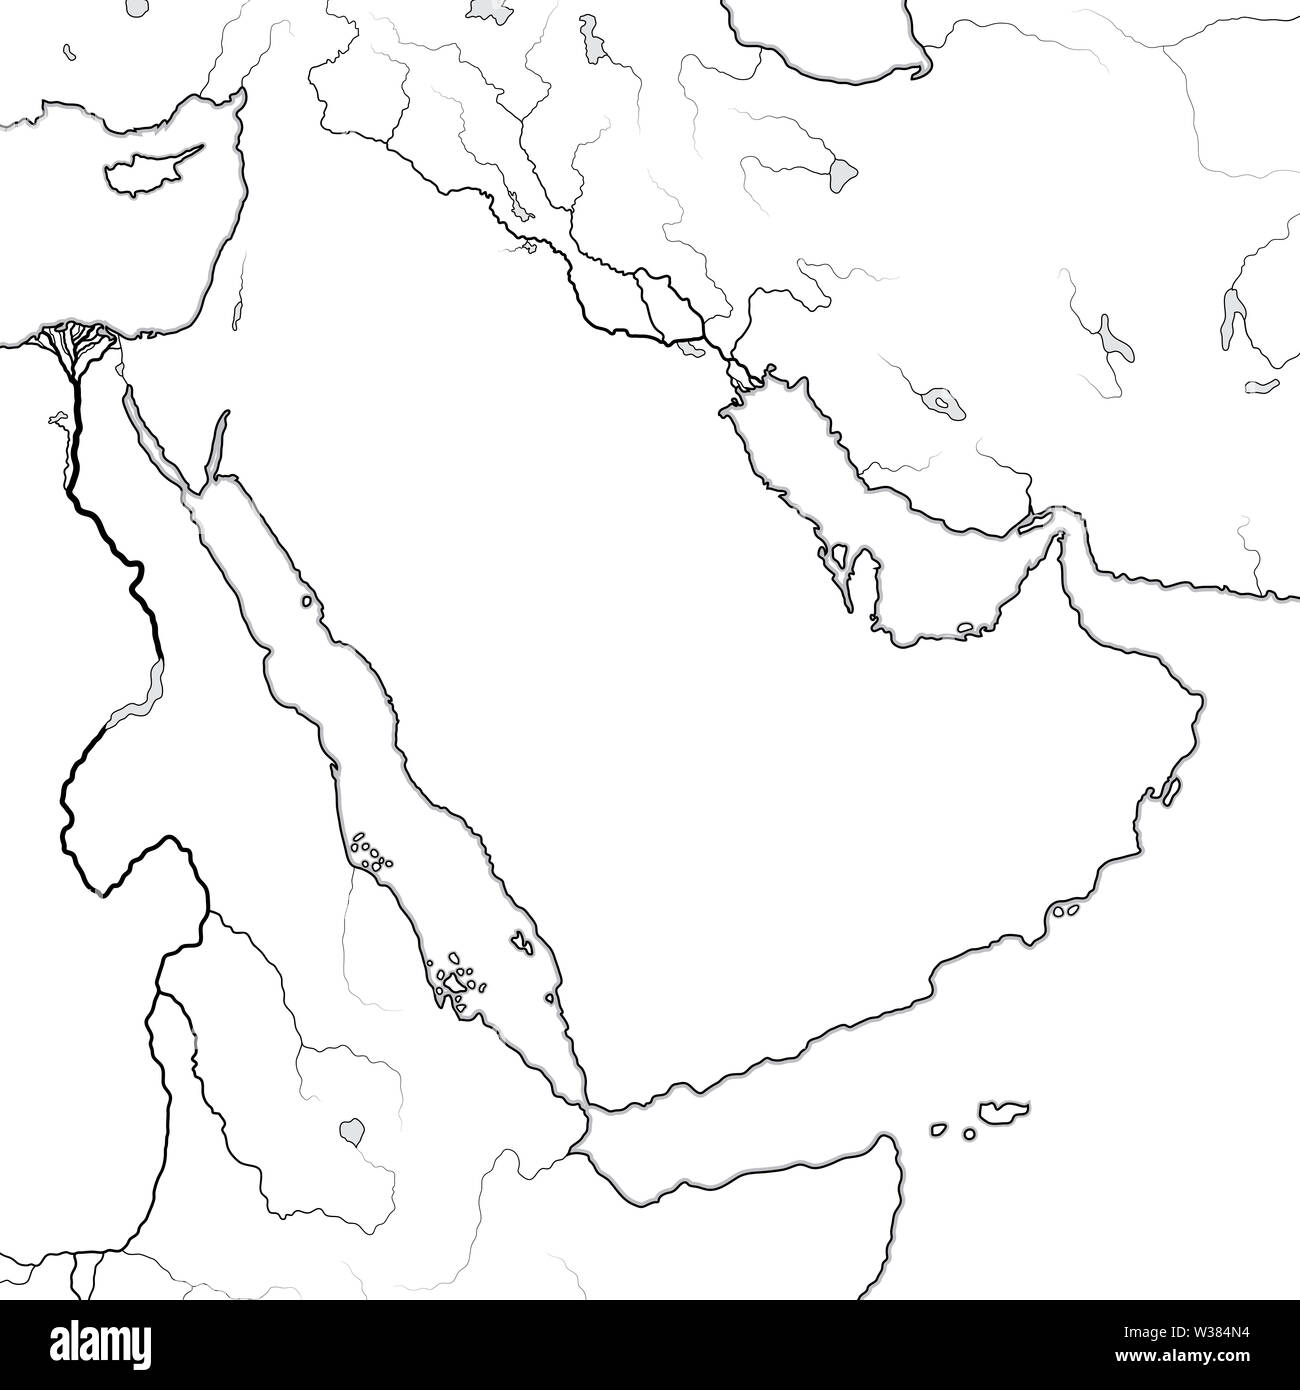 Blank Map Of Ancient Egypt And Mesopotamia